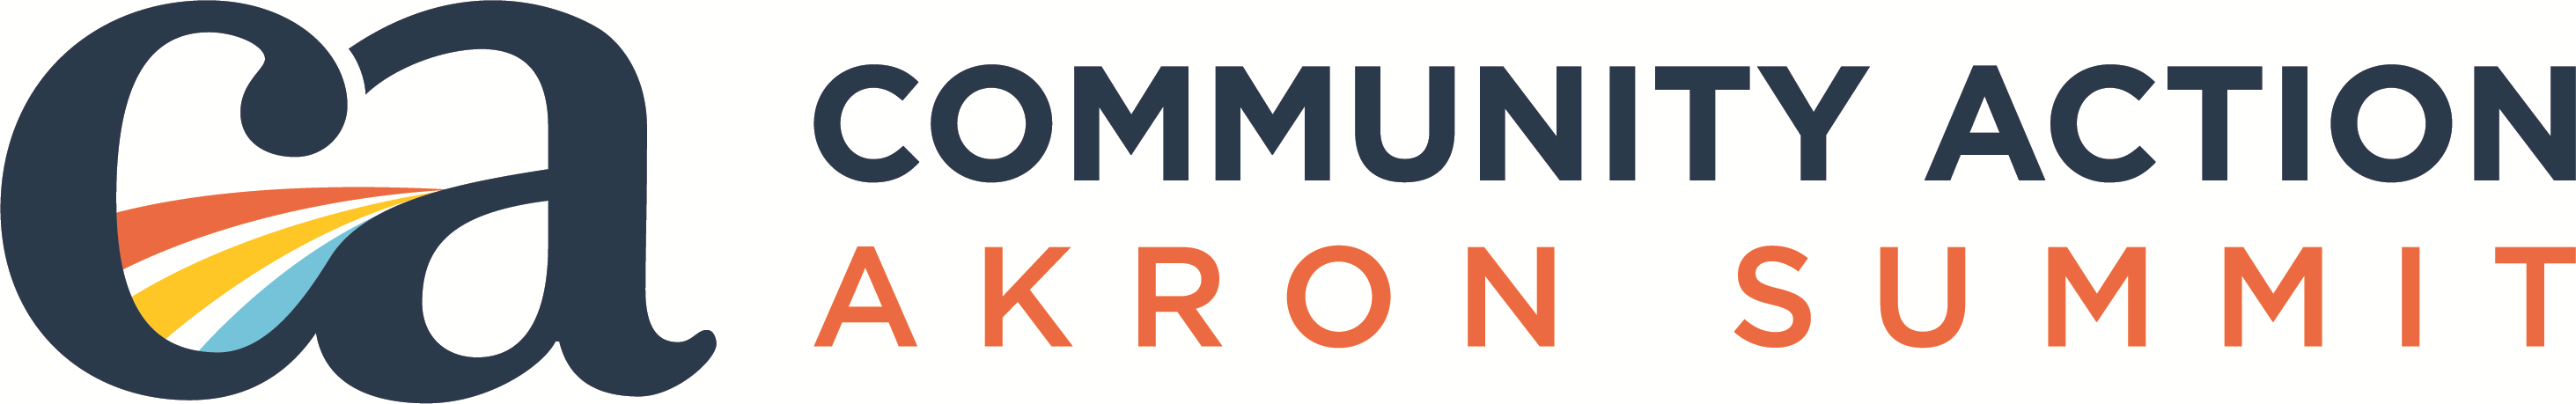 Community Action Akron Summit's Logo